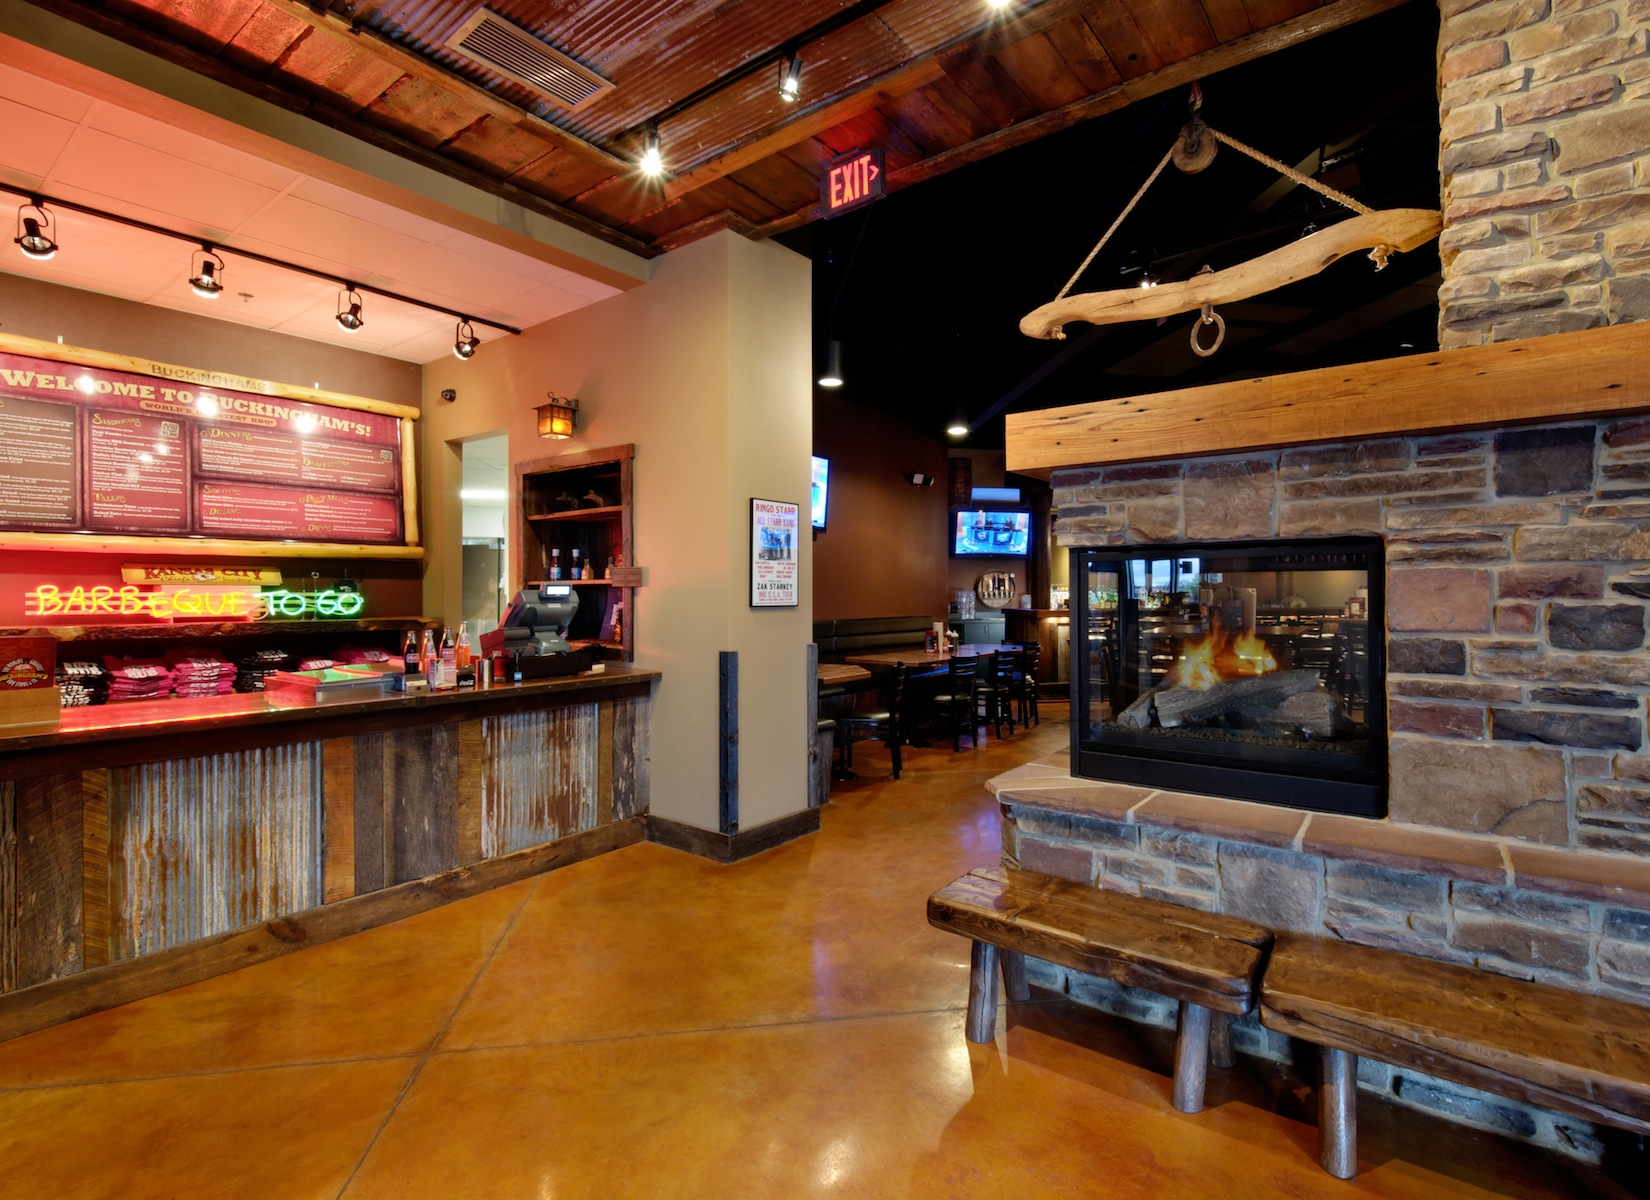 Bbq restaurant design ideas ask home